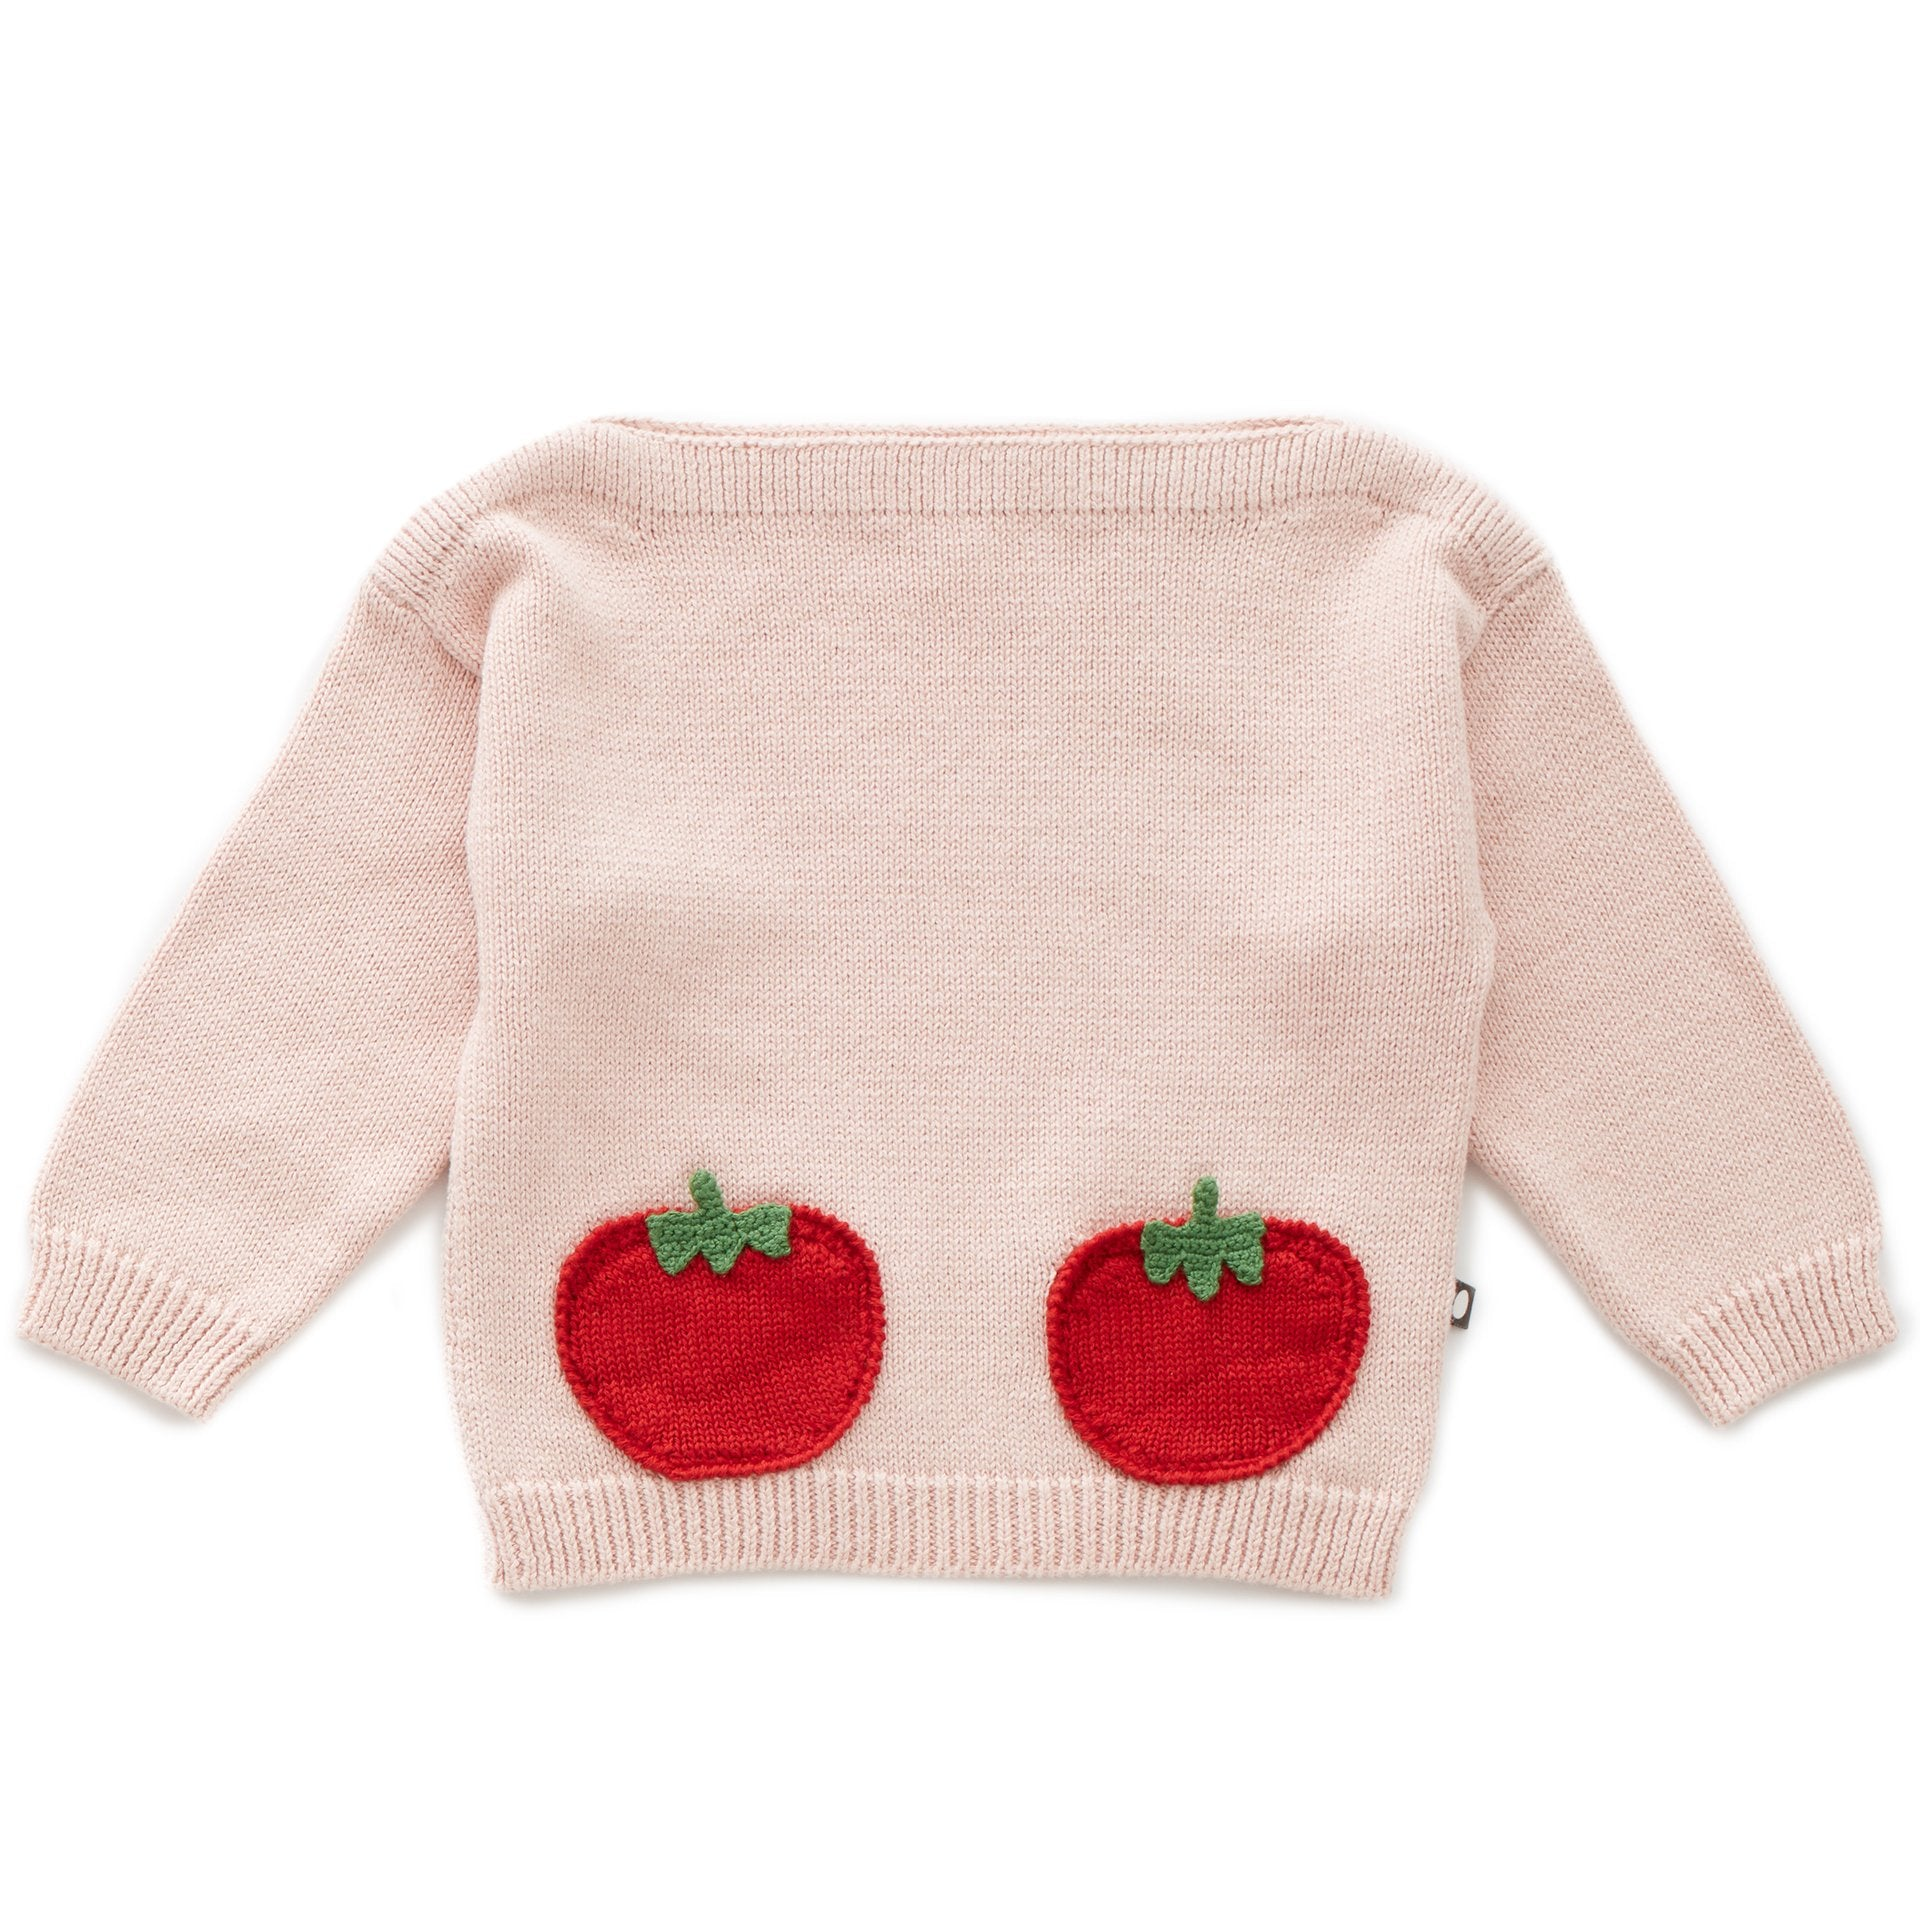 OEUF NYC Tomato Pocket Sweater - Coral Almond/Tomato